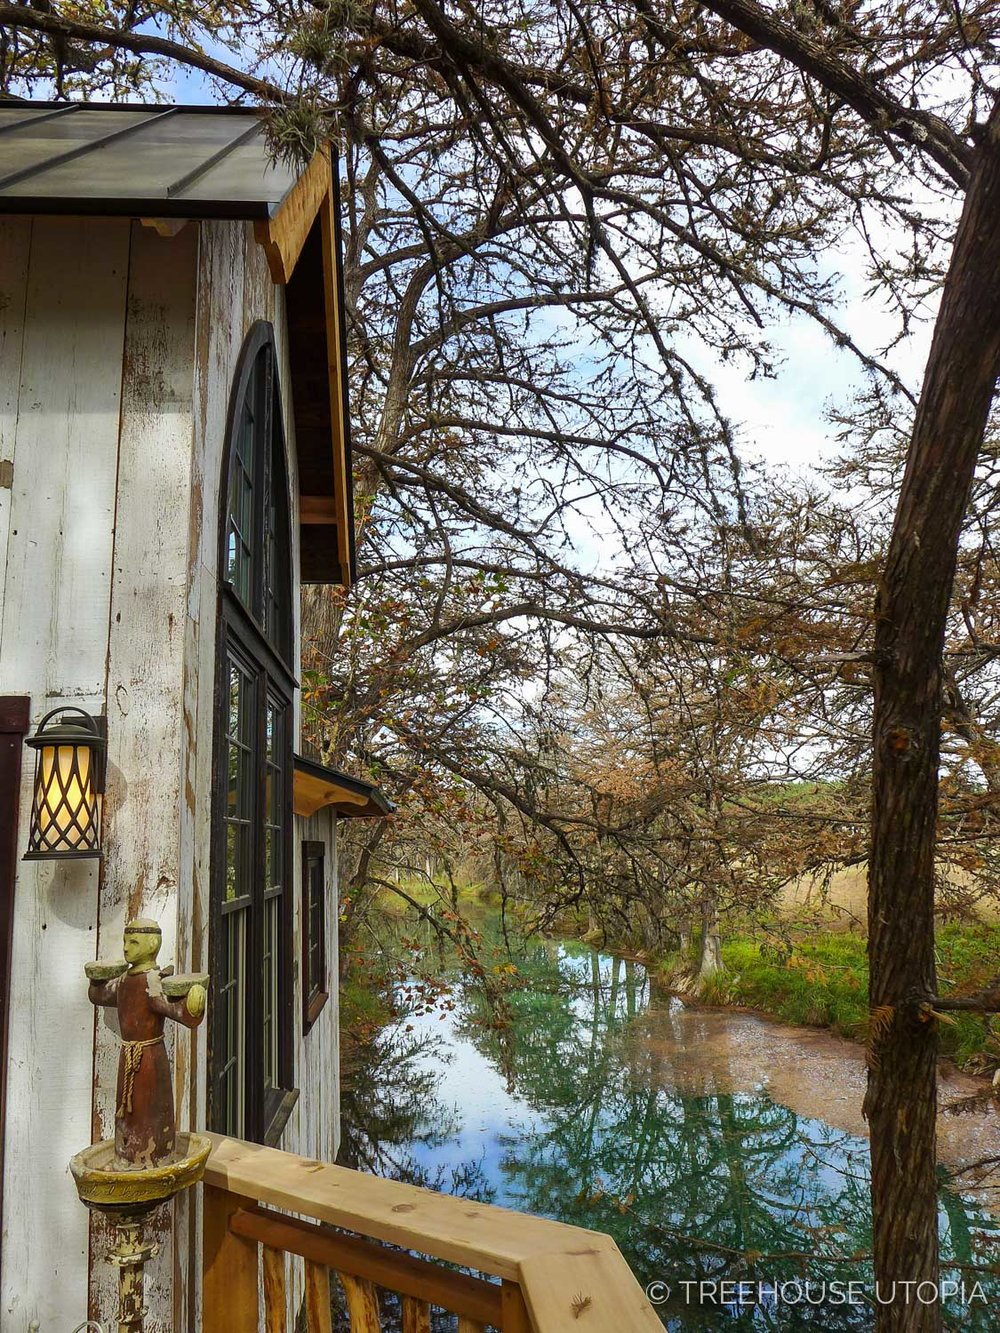 View of the river from back deck on Chapelle at Treehouse Utopia, a Texas Hill Country Retreat. Photo by Nelson Treehouse.